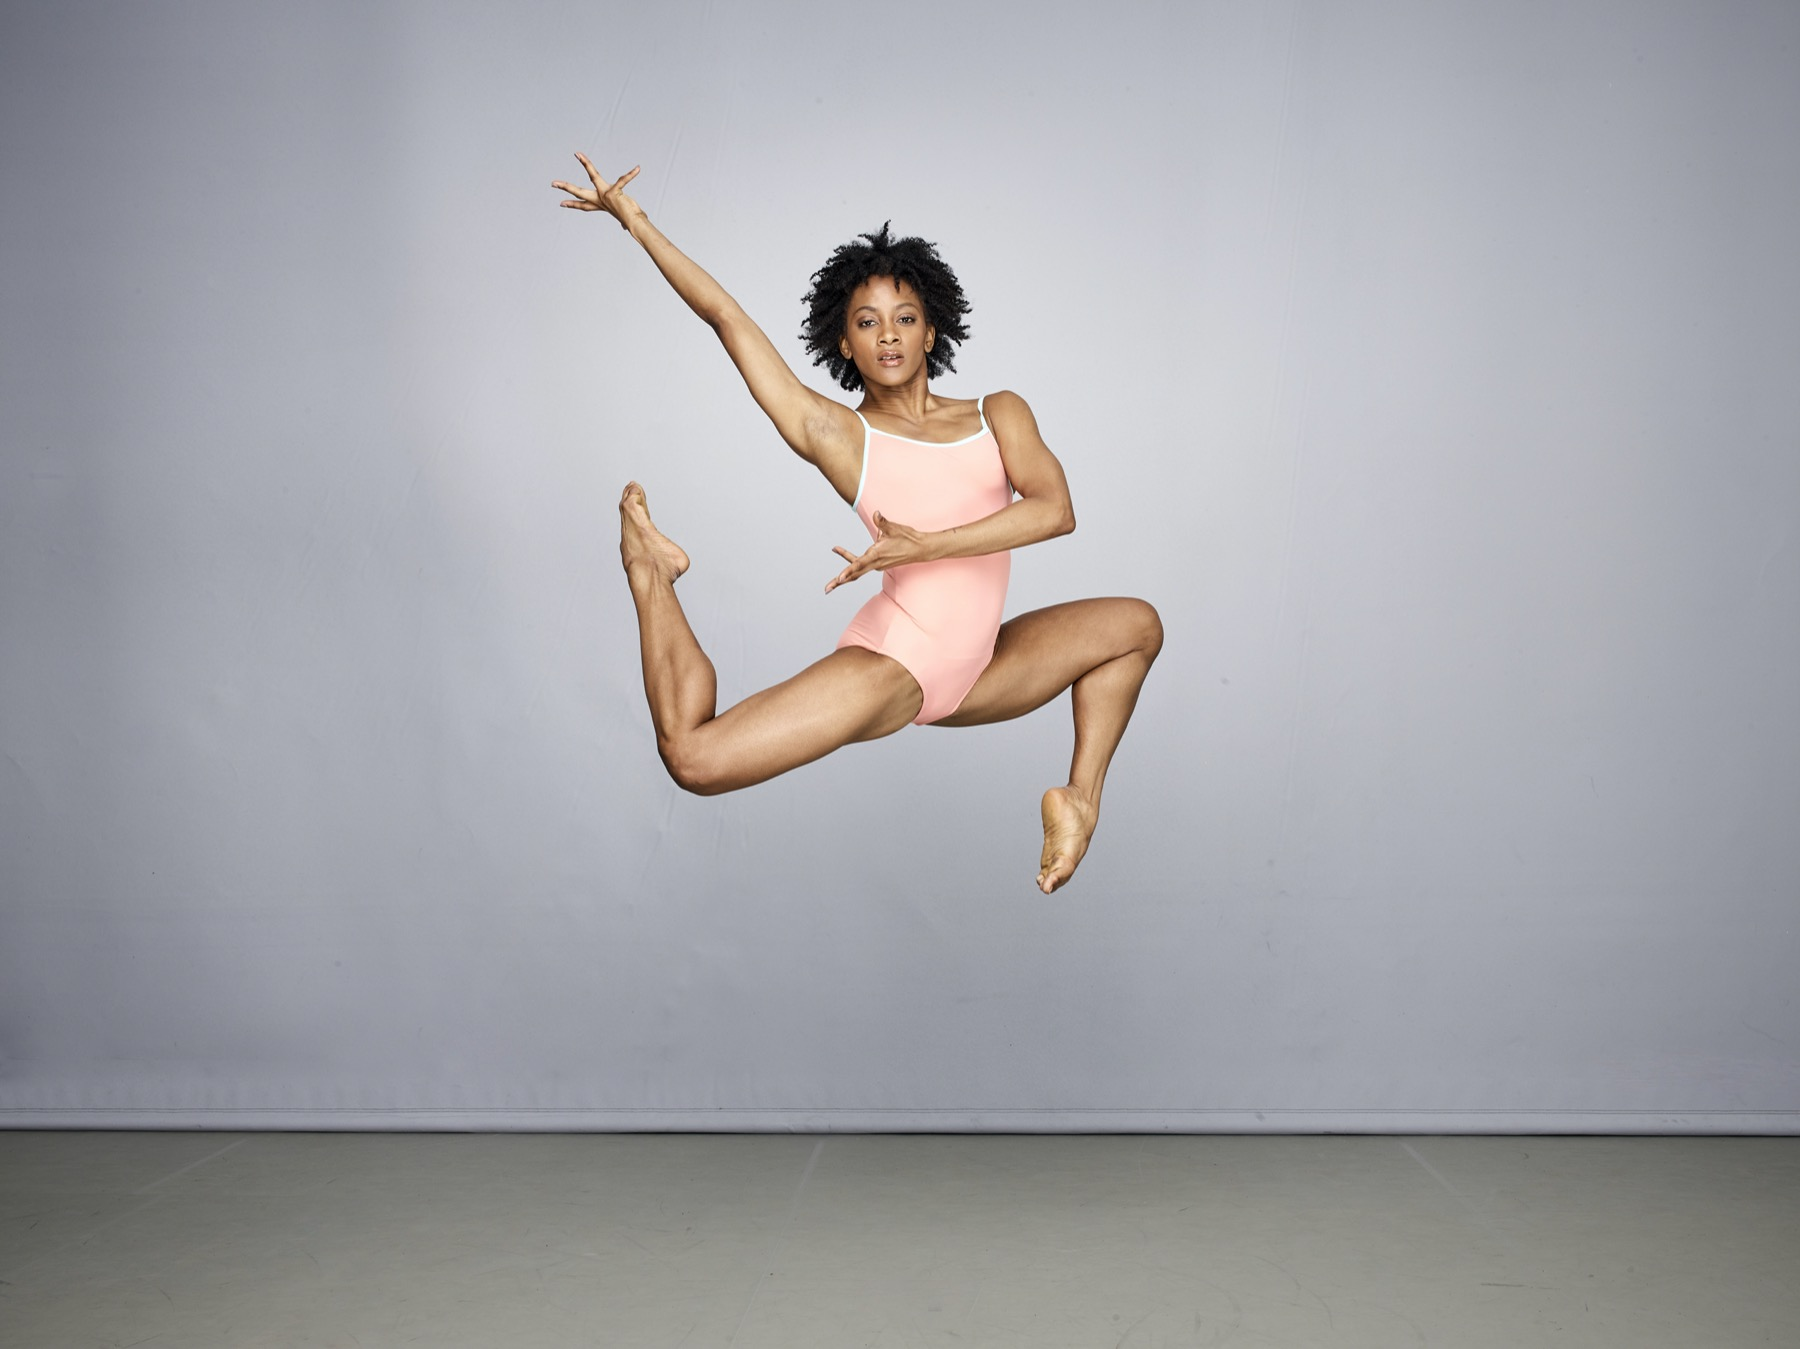 Alvin Ailey jumping in the air at the American Dance Theater